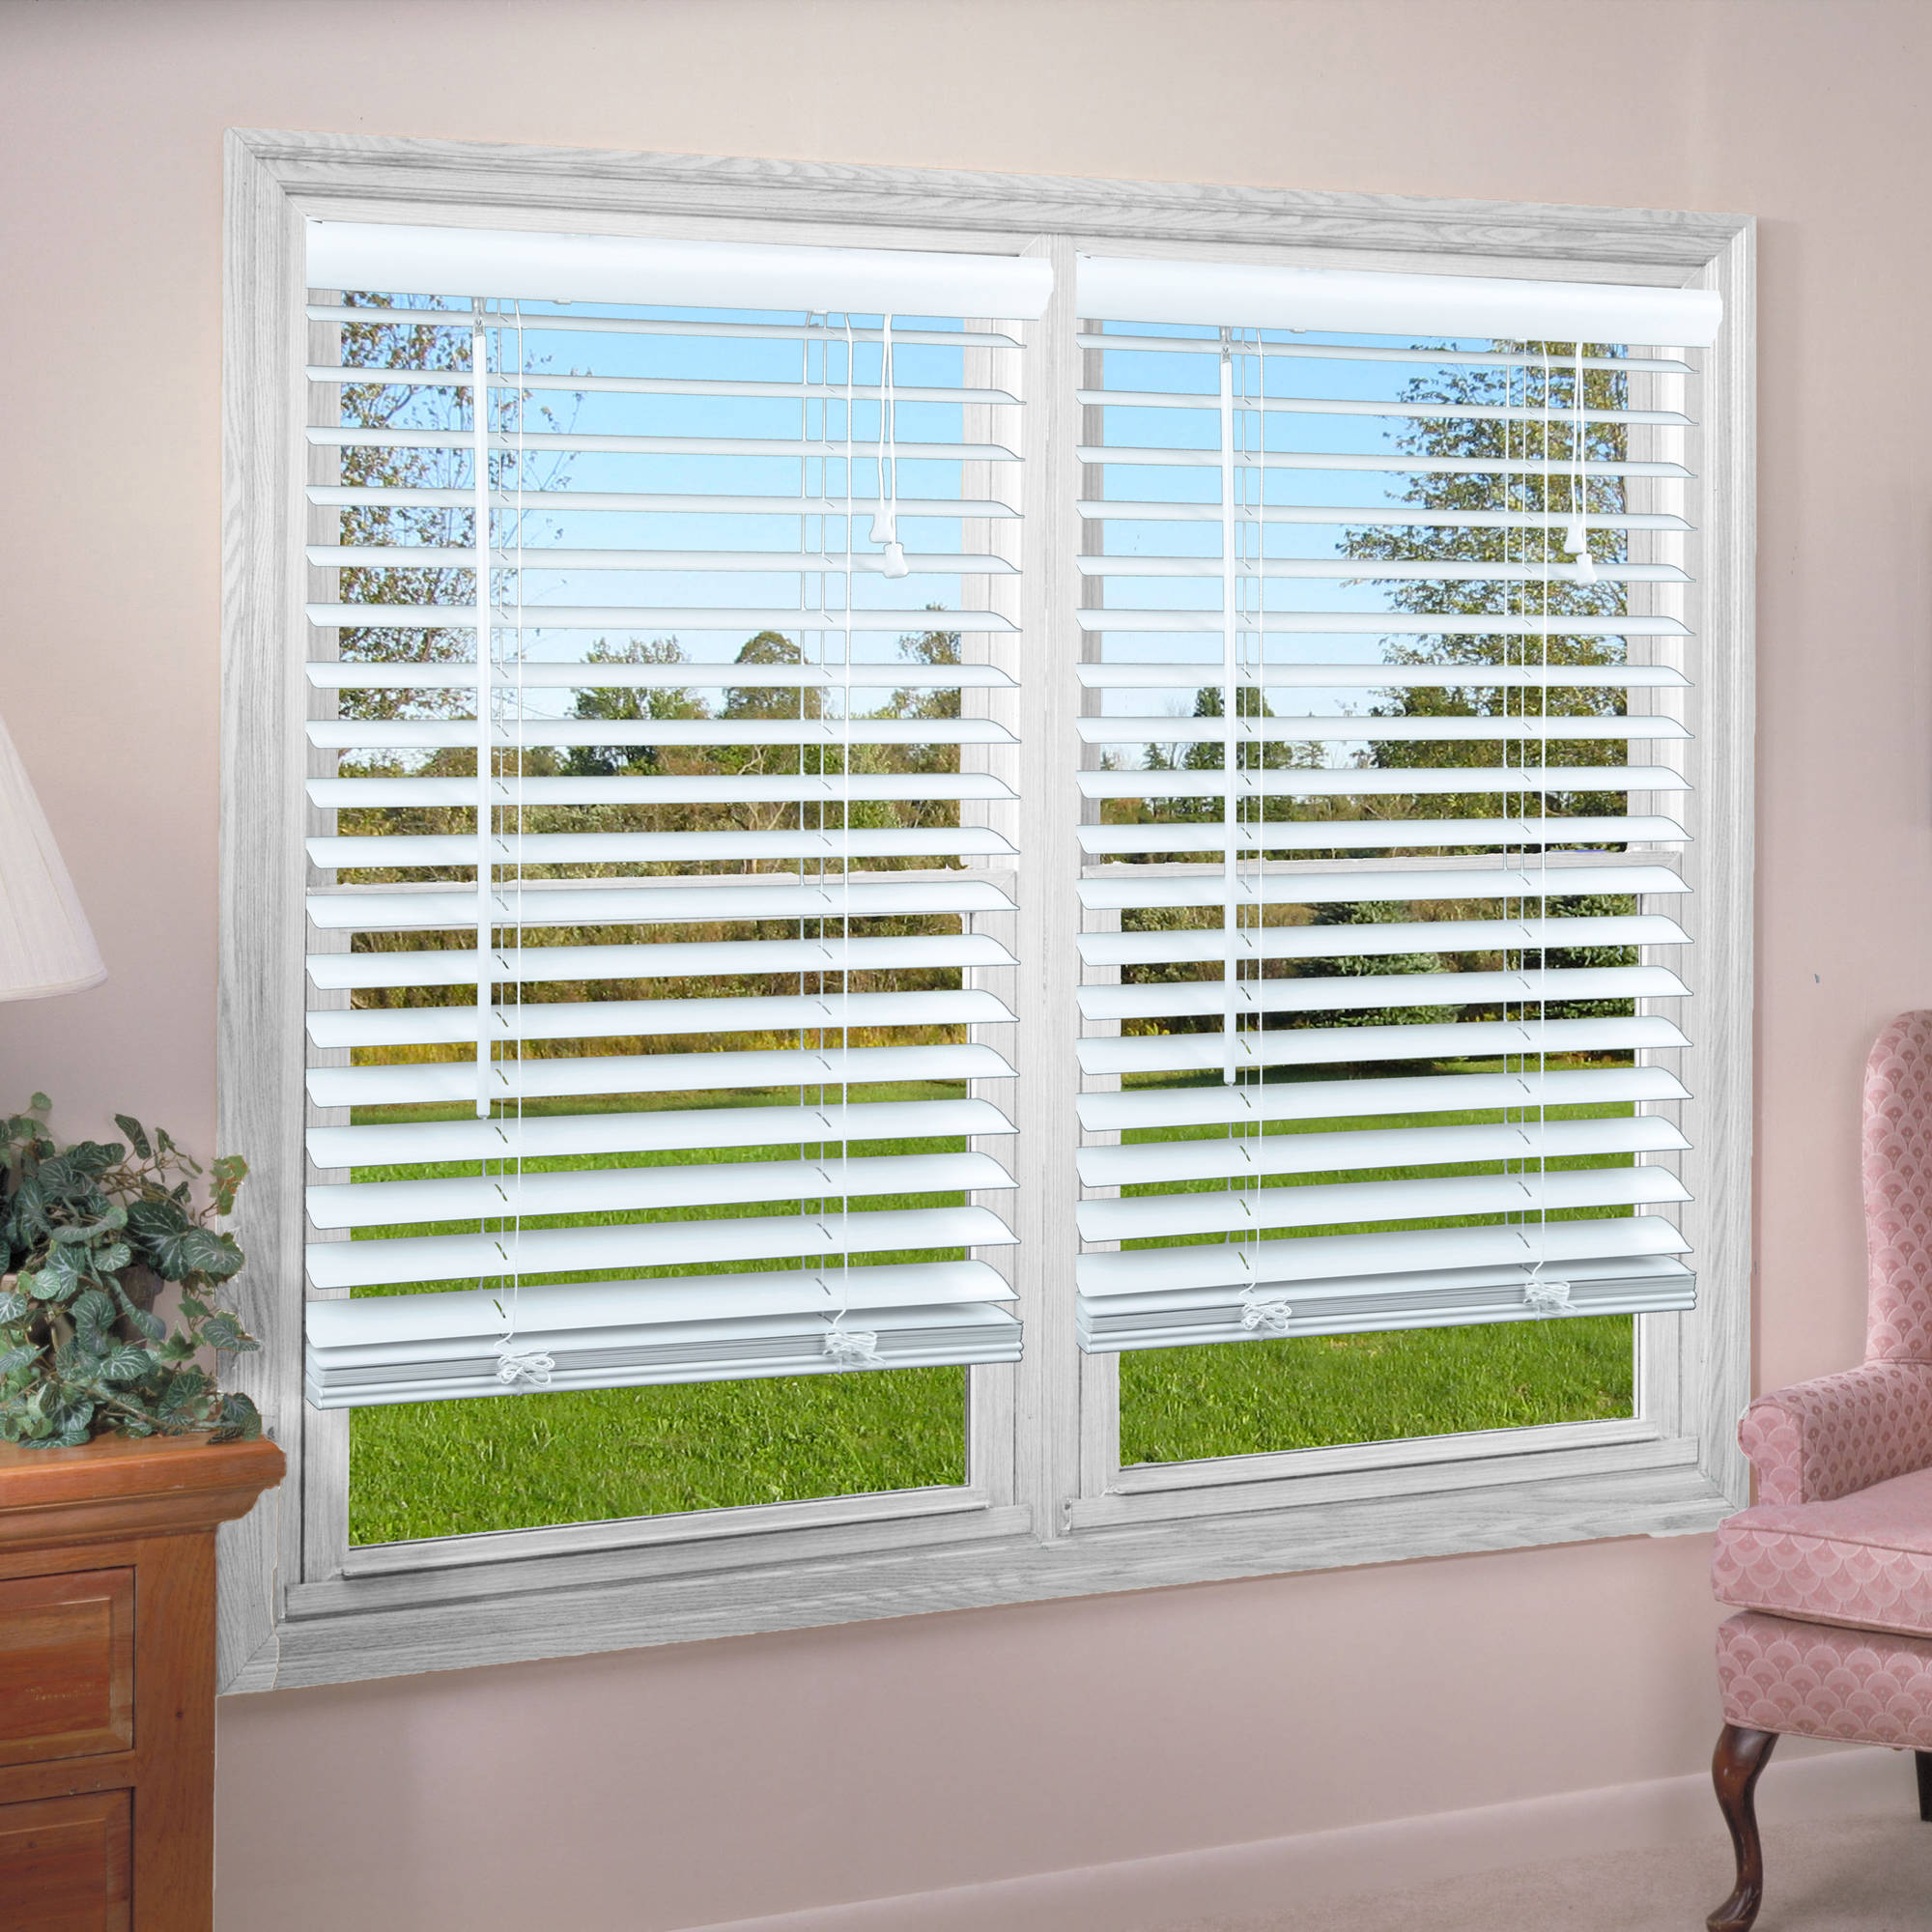 replacement for a blinds blind slats mini window black door shutters covering ideas cheap patio vertical walmart your wood buy faux curtains best